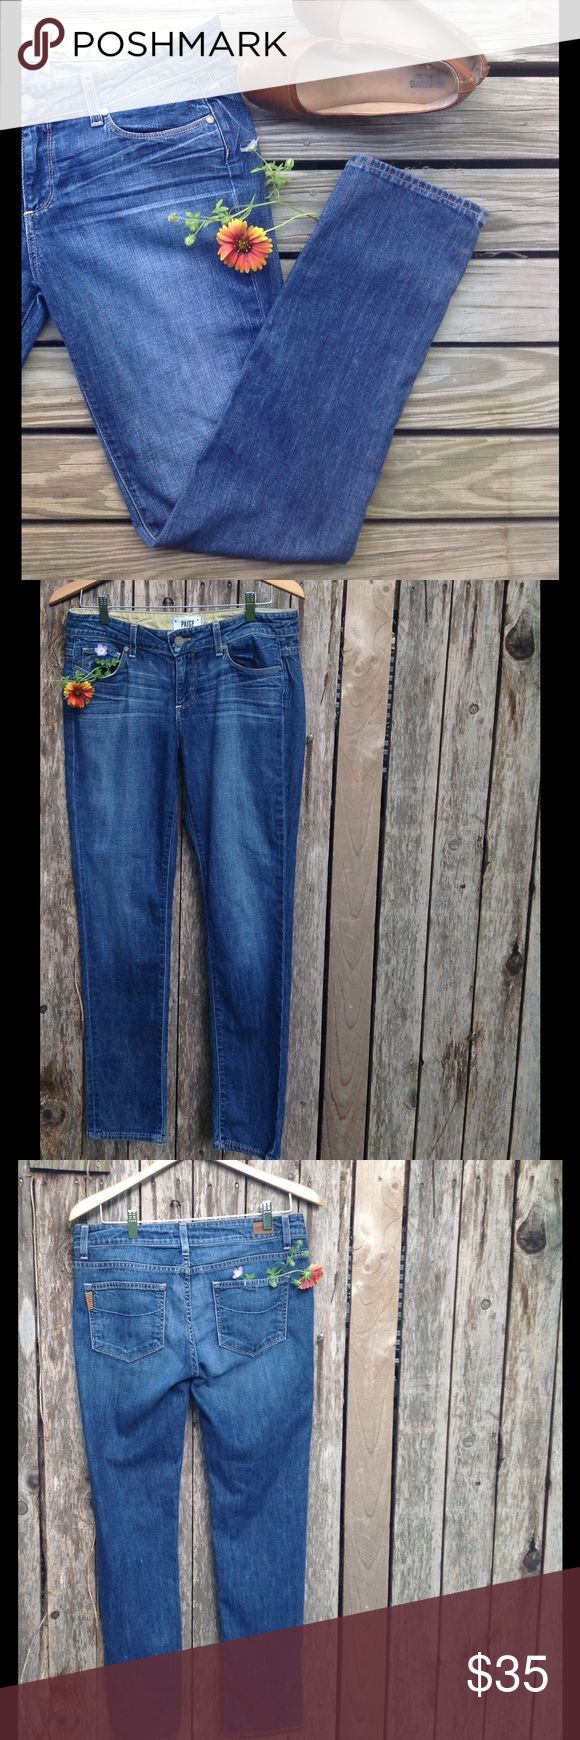 Paige Skinny Skinny Jimmy Jeans Excellent Condition, very light wear. Color very good throughout, no tears, visible wear, etc. Paige Jeans Jeans Skinny